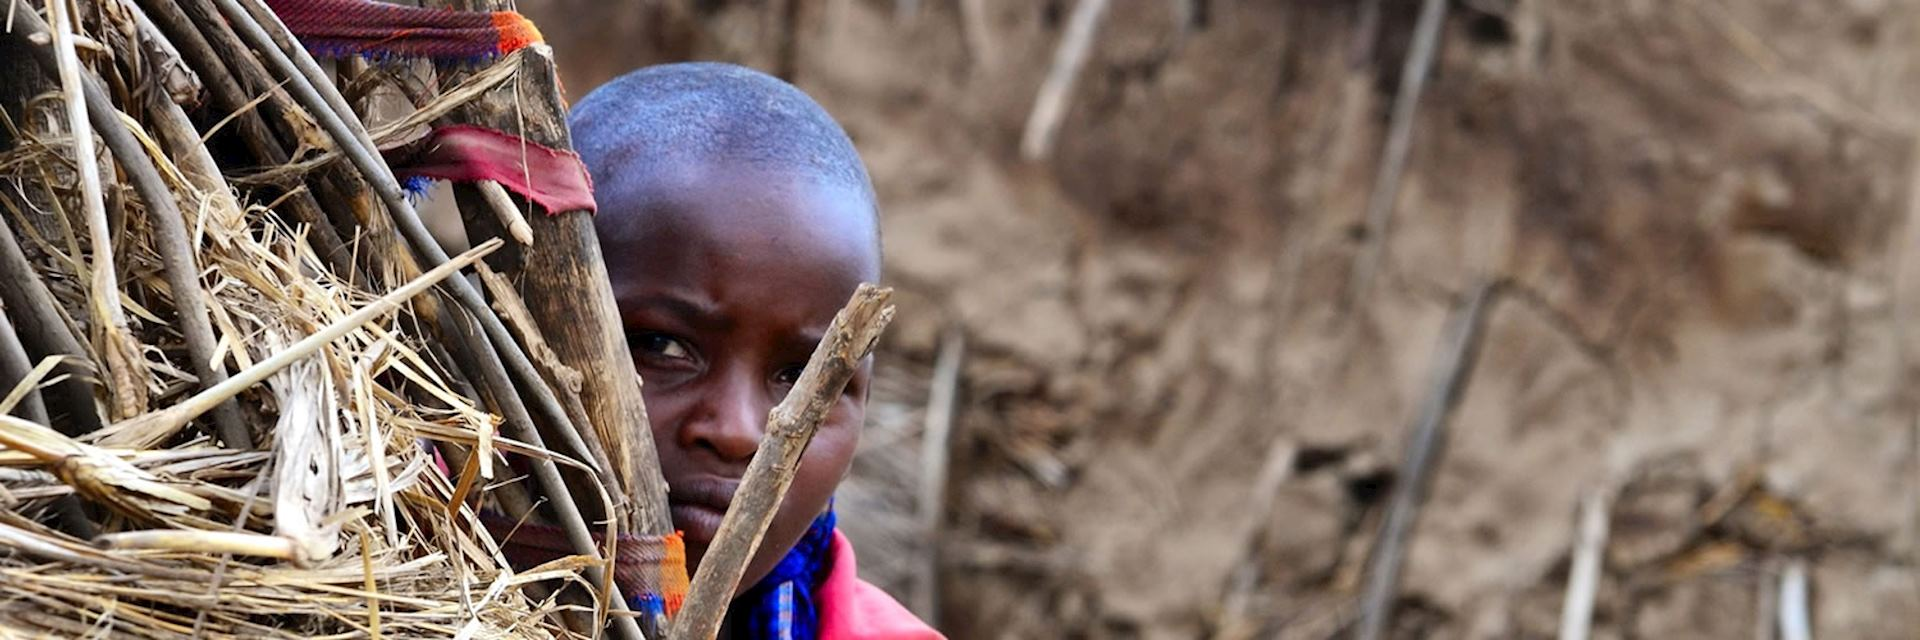 Shy Maasai boy, Ngorongoro Conservation Area